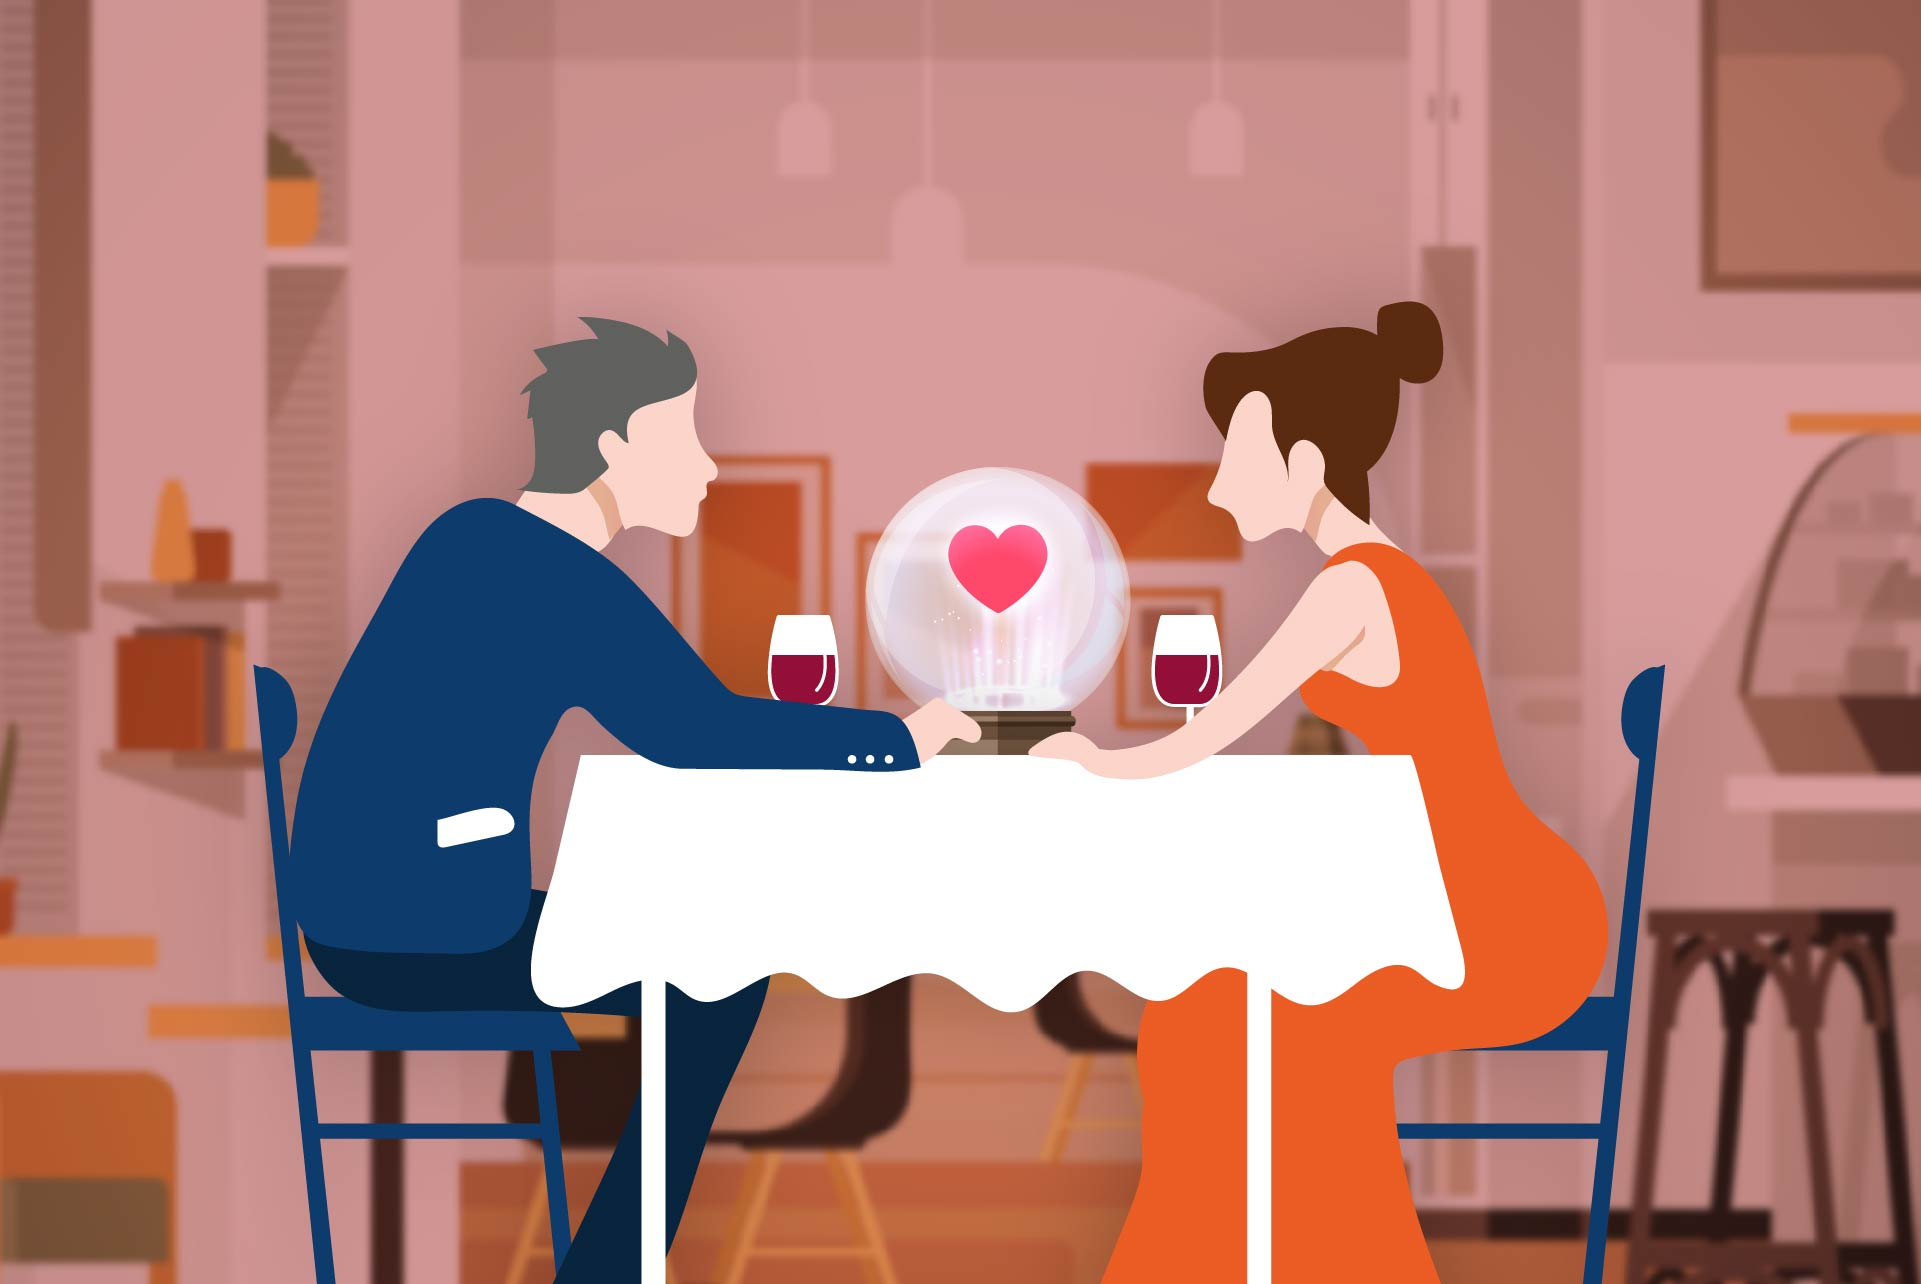 20180815_magic-tool-for-dining-out-couples_1 copy.jpg